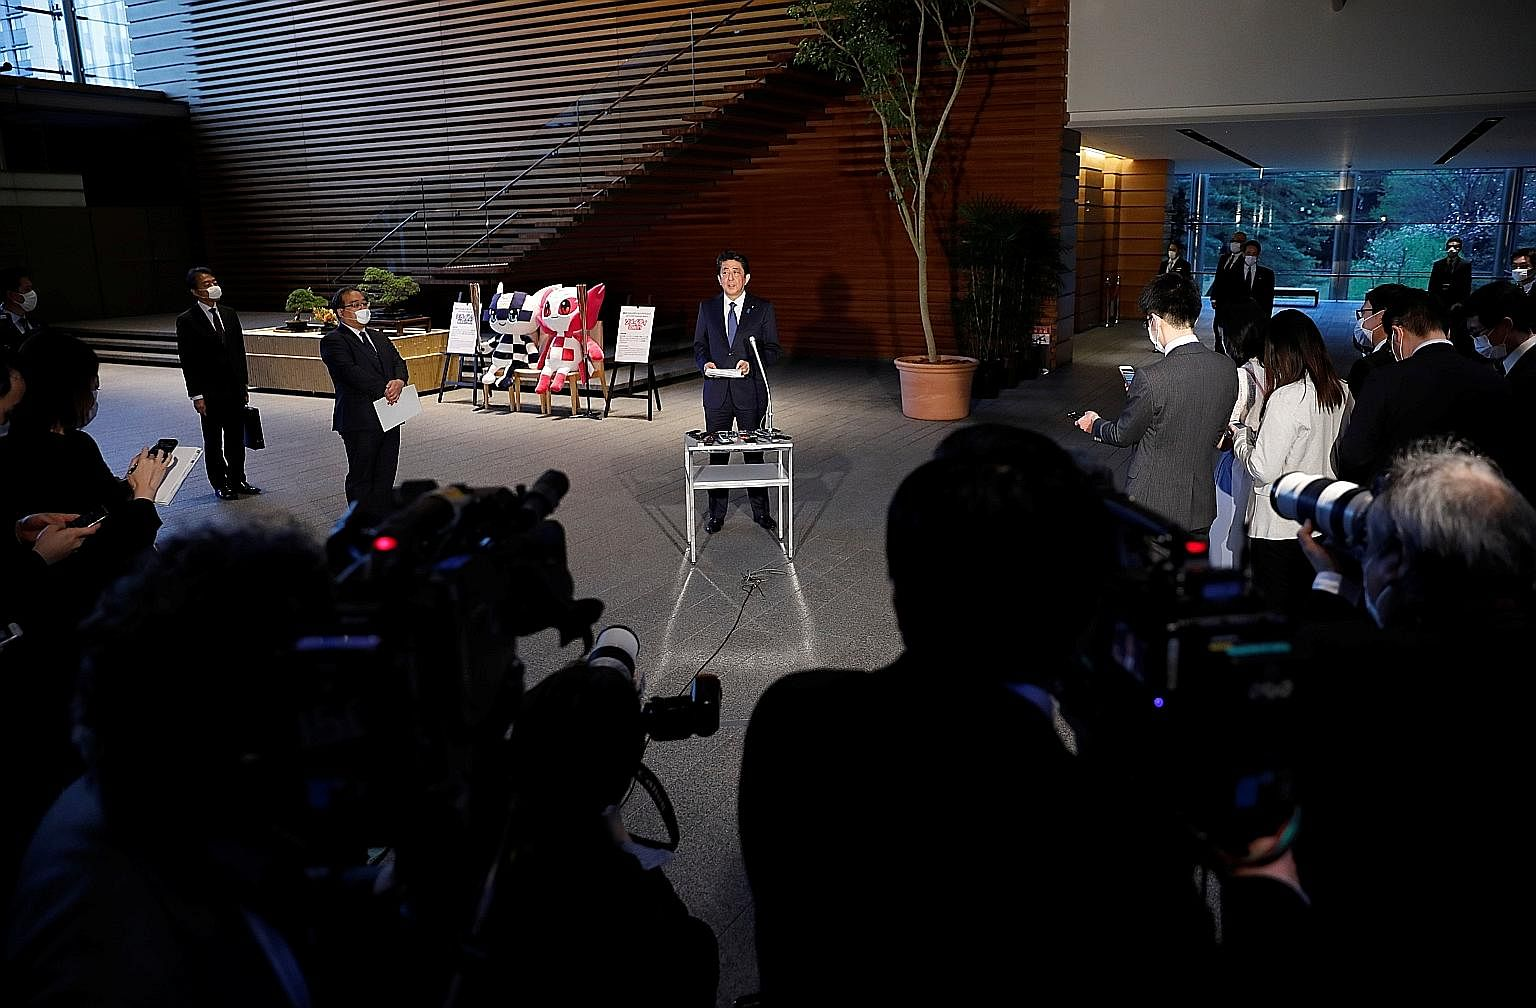 Japan's Prime Minister Shinzo Abe speaking to the media on Covid-19 last month. He has noted the fragility of Japan's supply chain due to over-reliance on China, which has crippled key industries during the pandemic.